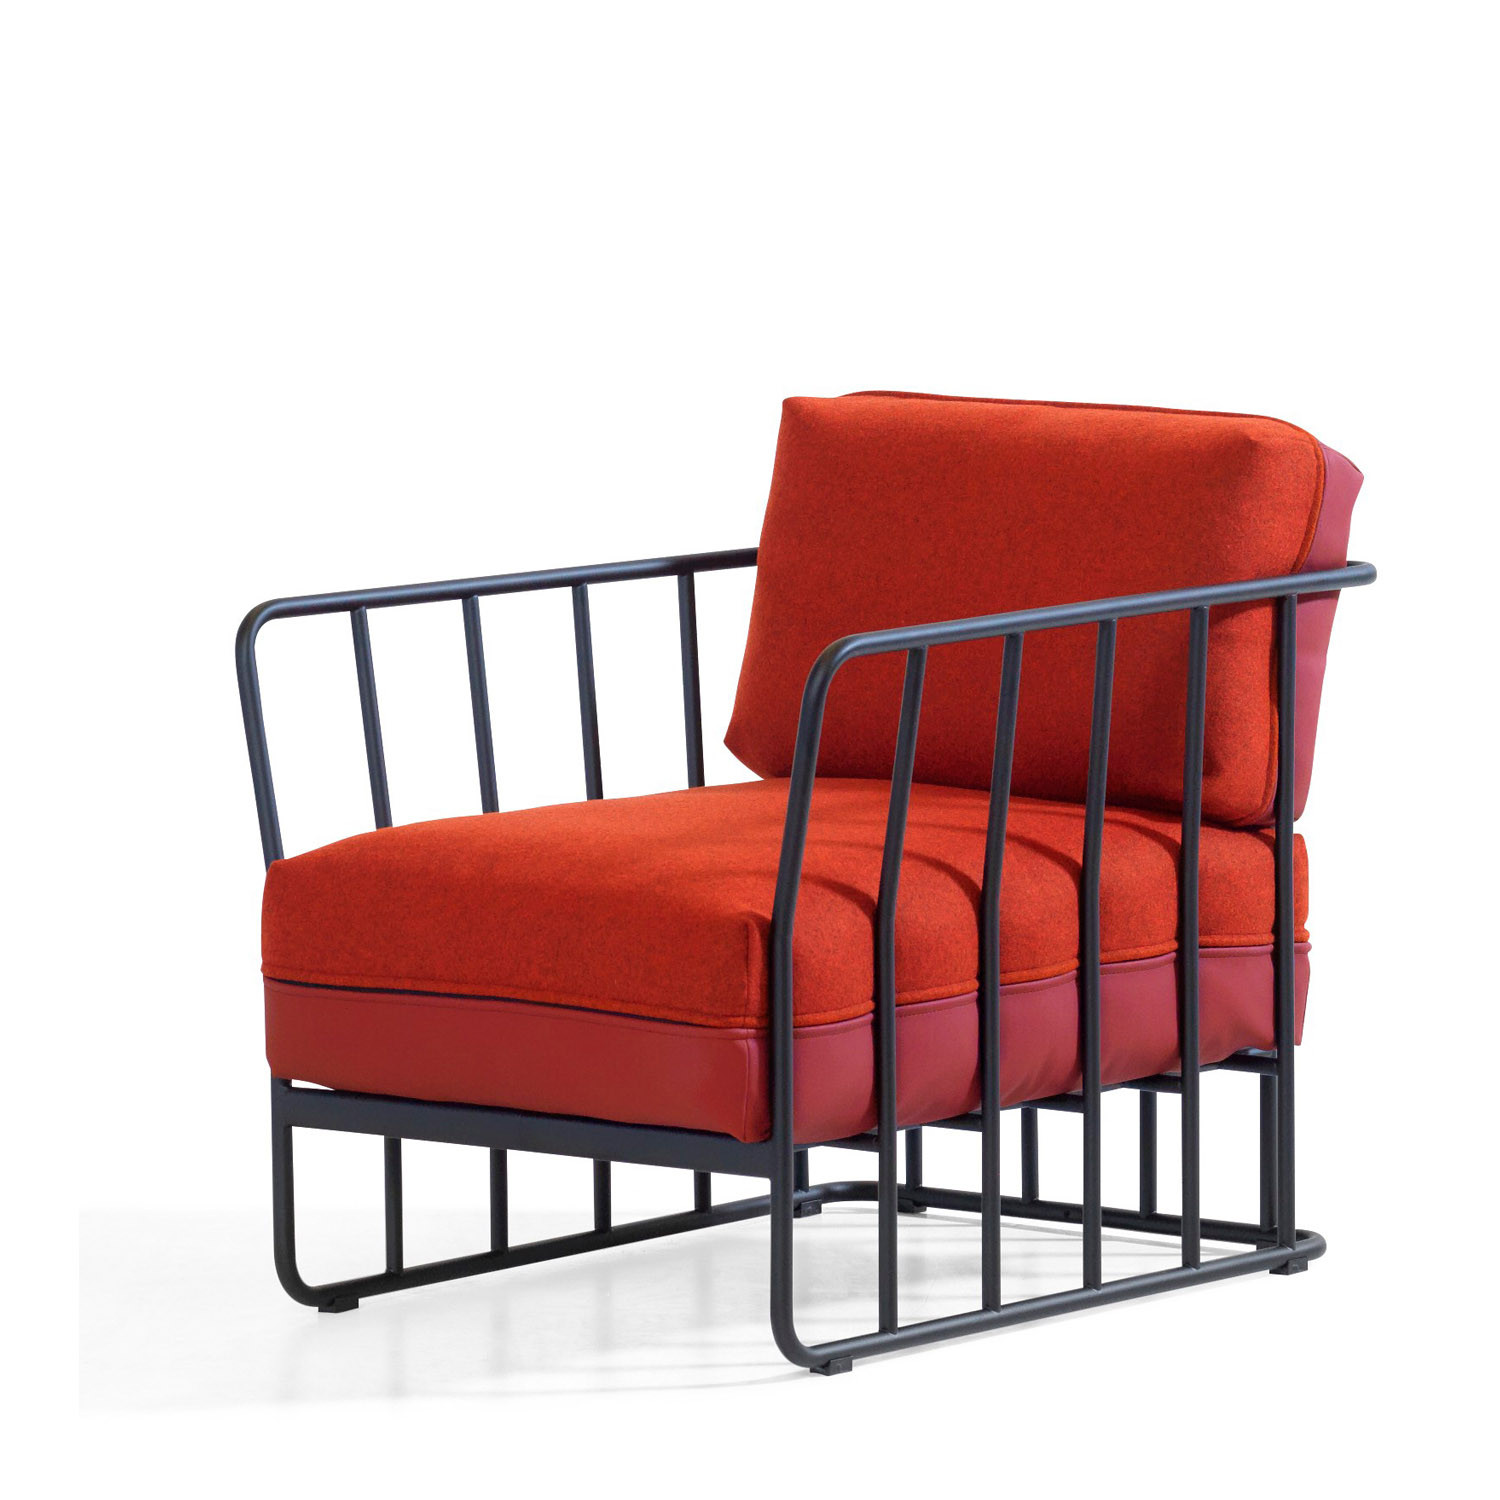 Code 27 Lounge Chair